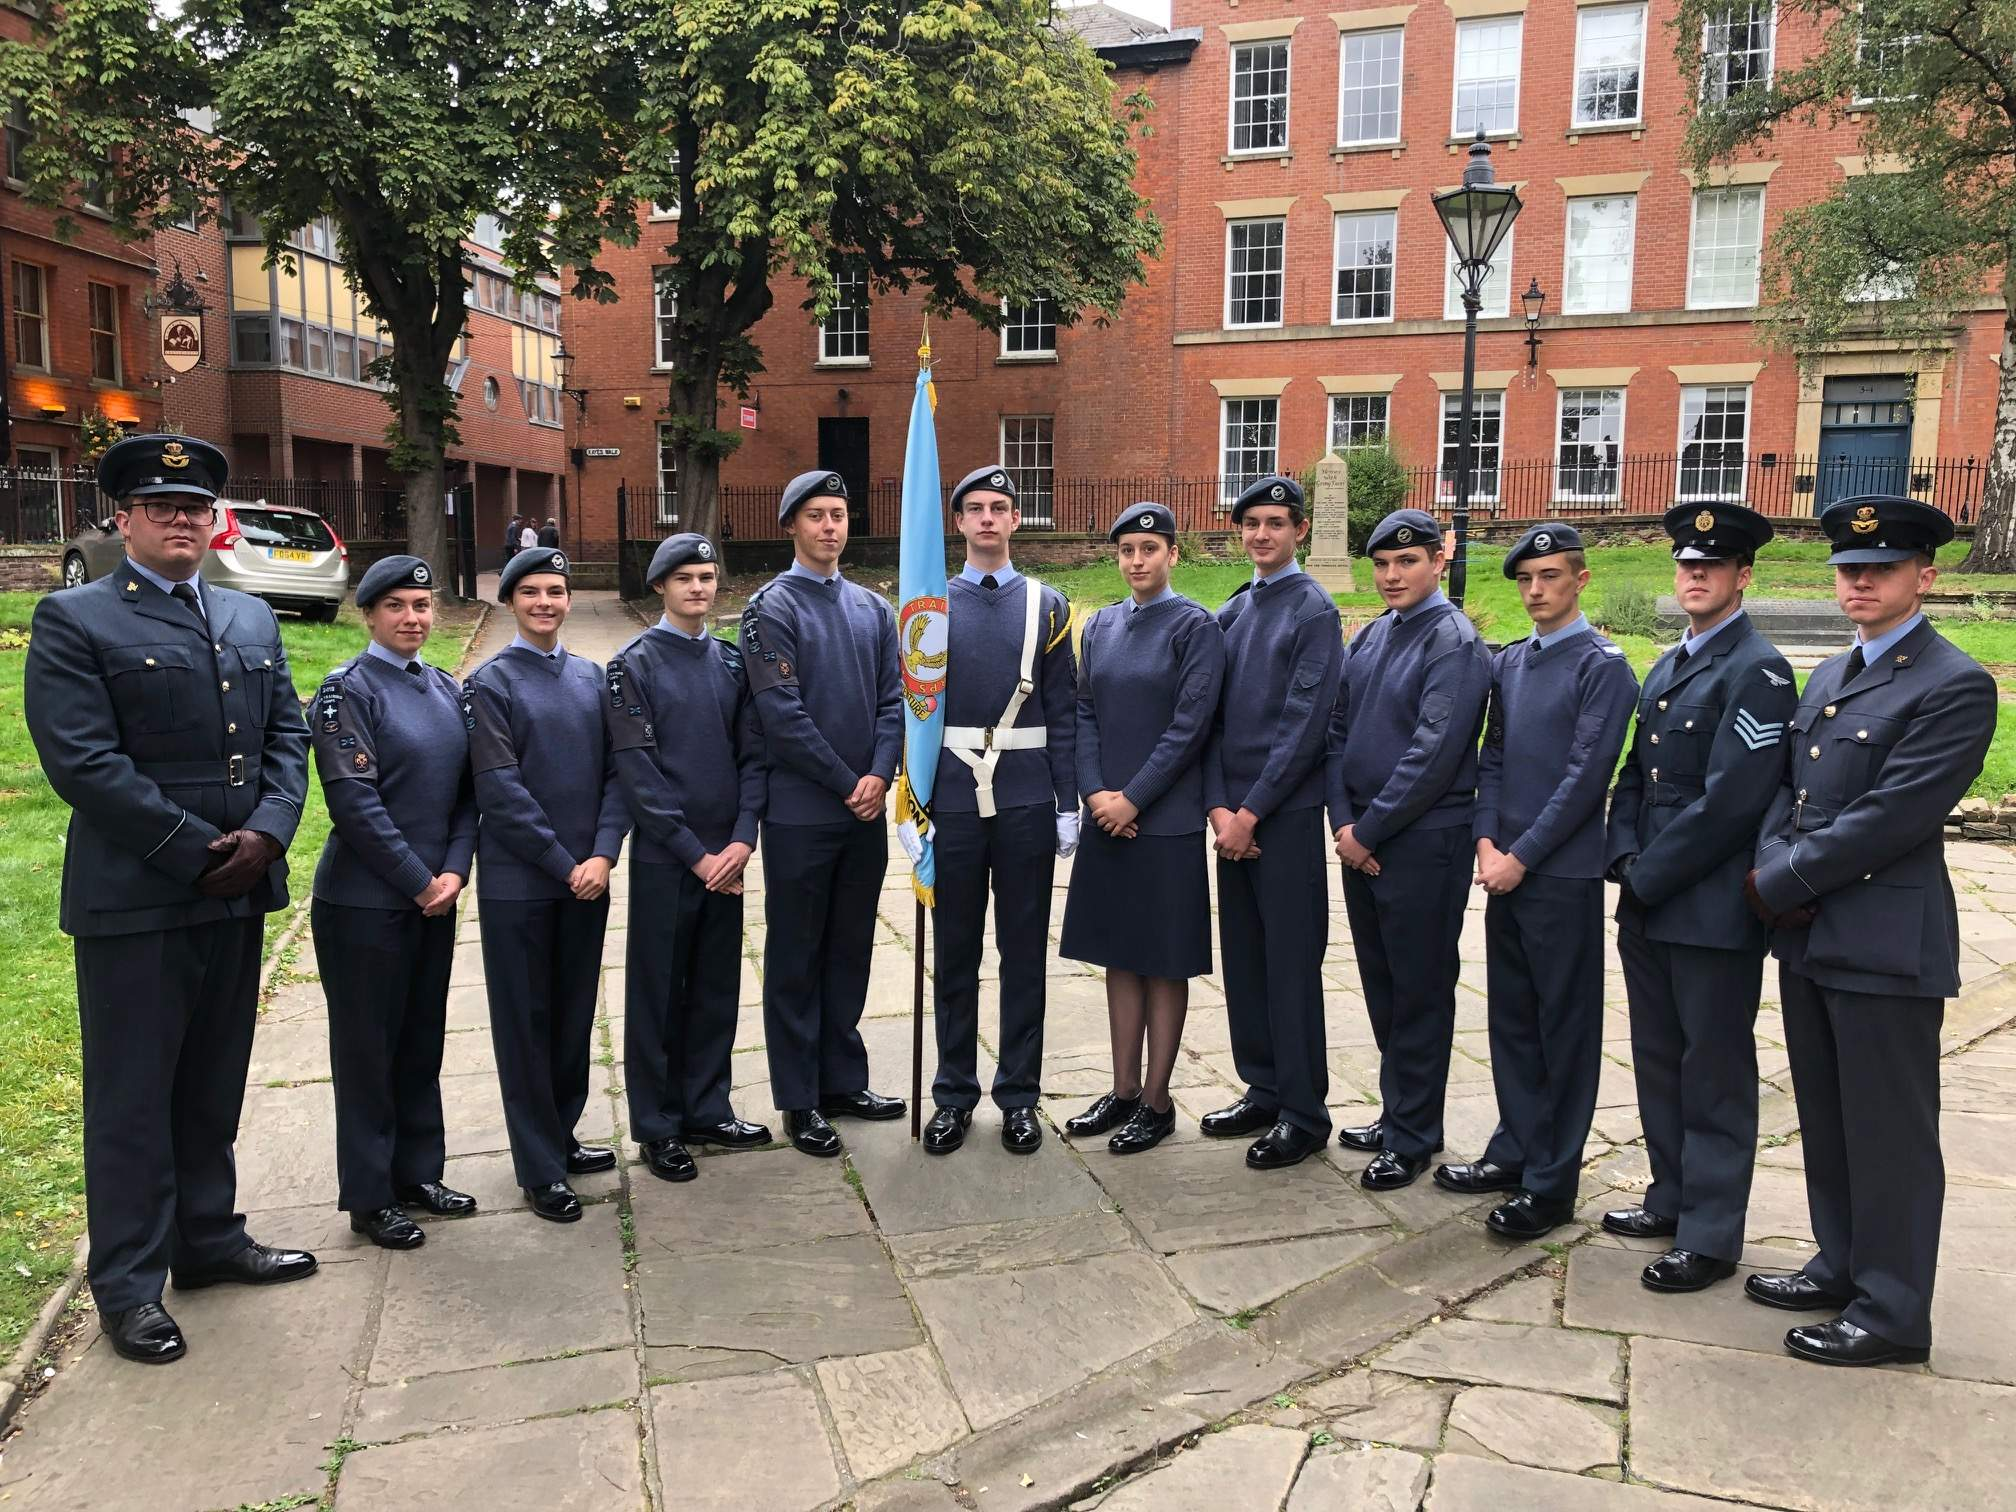 Battle of Britain Service